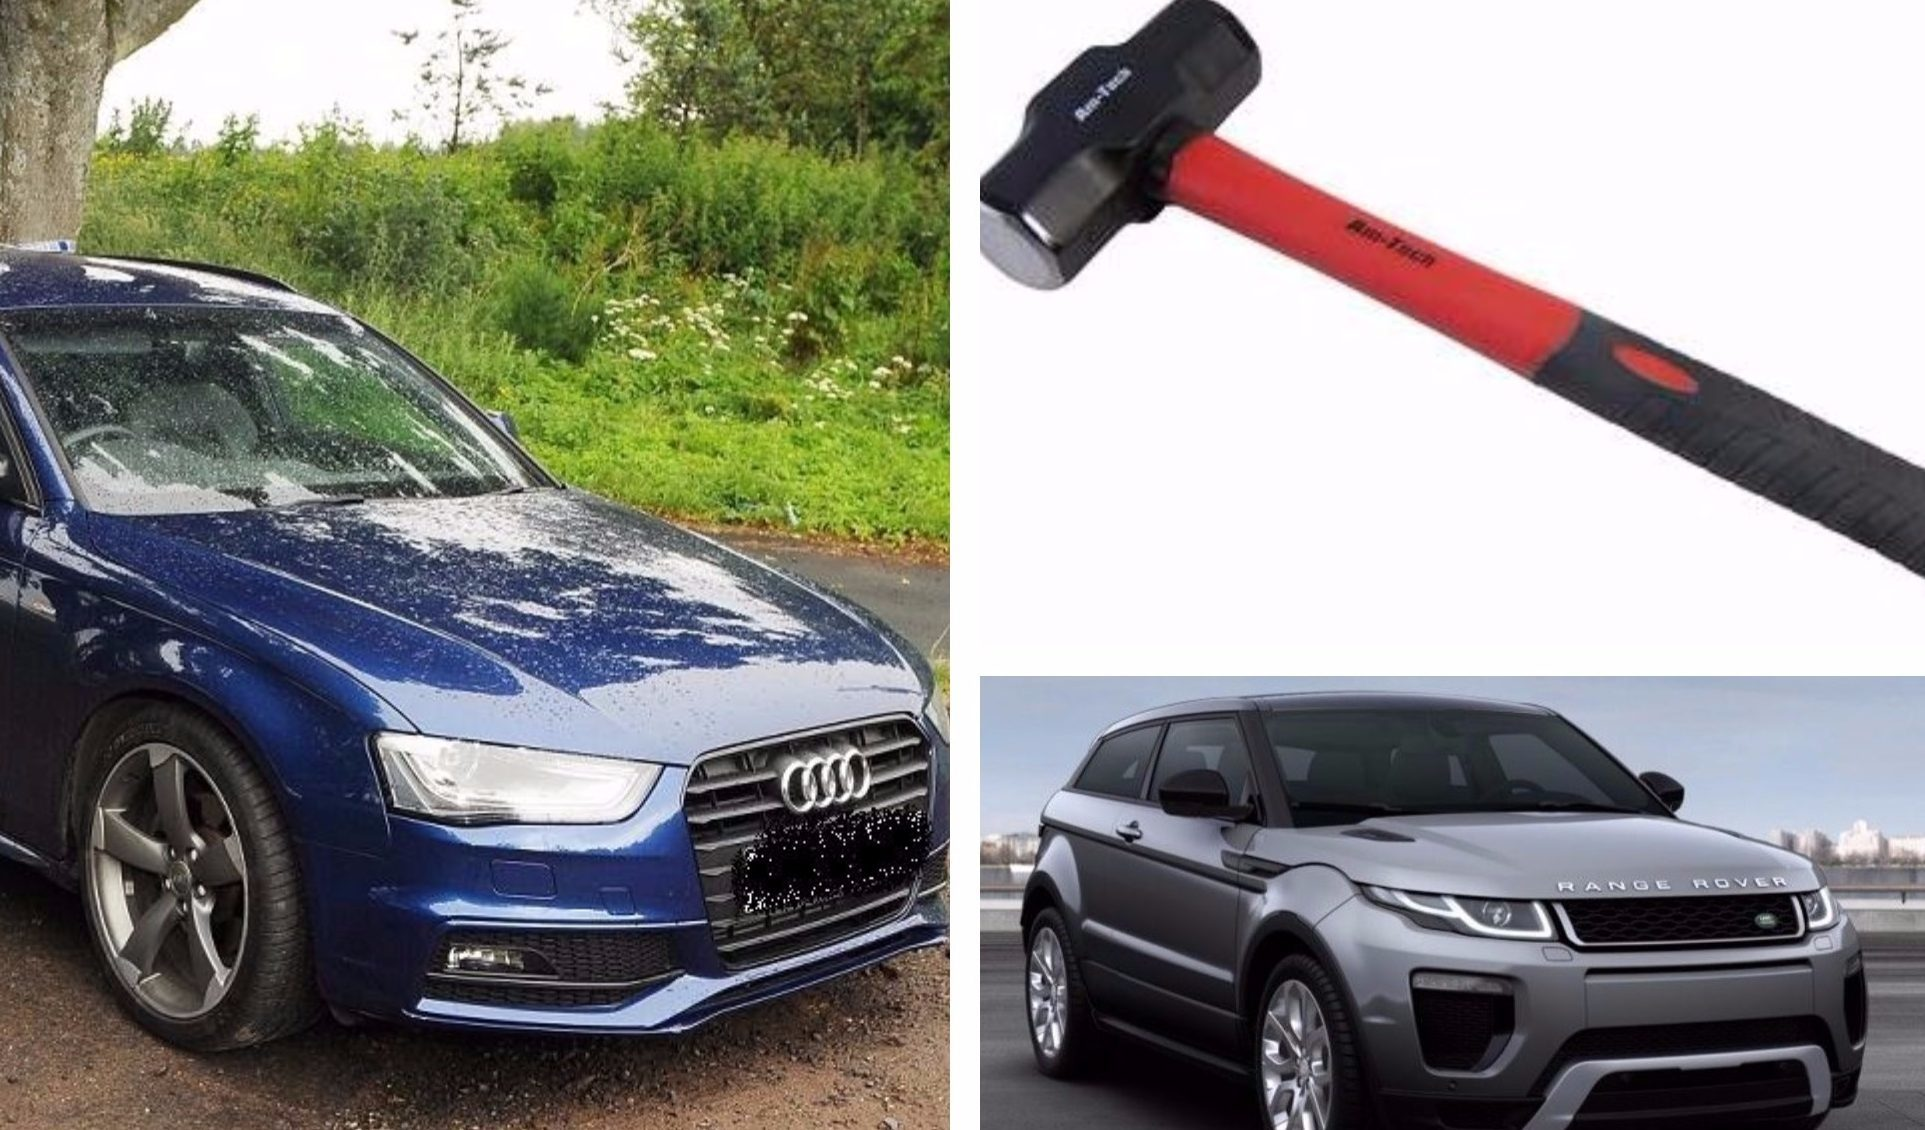 The vehicles and hammer used during the Gleneagles Hotel theft.